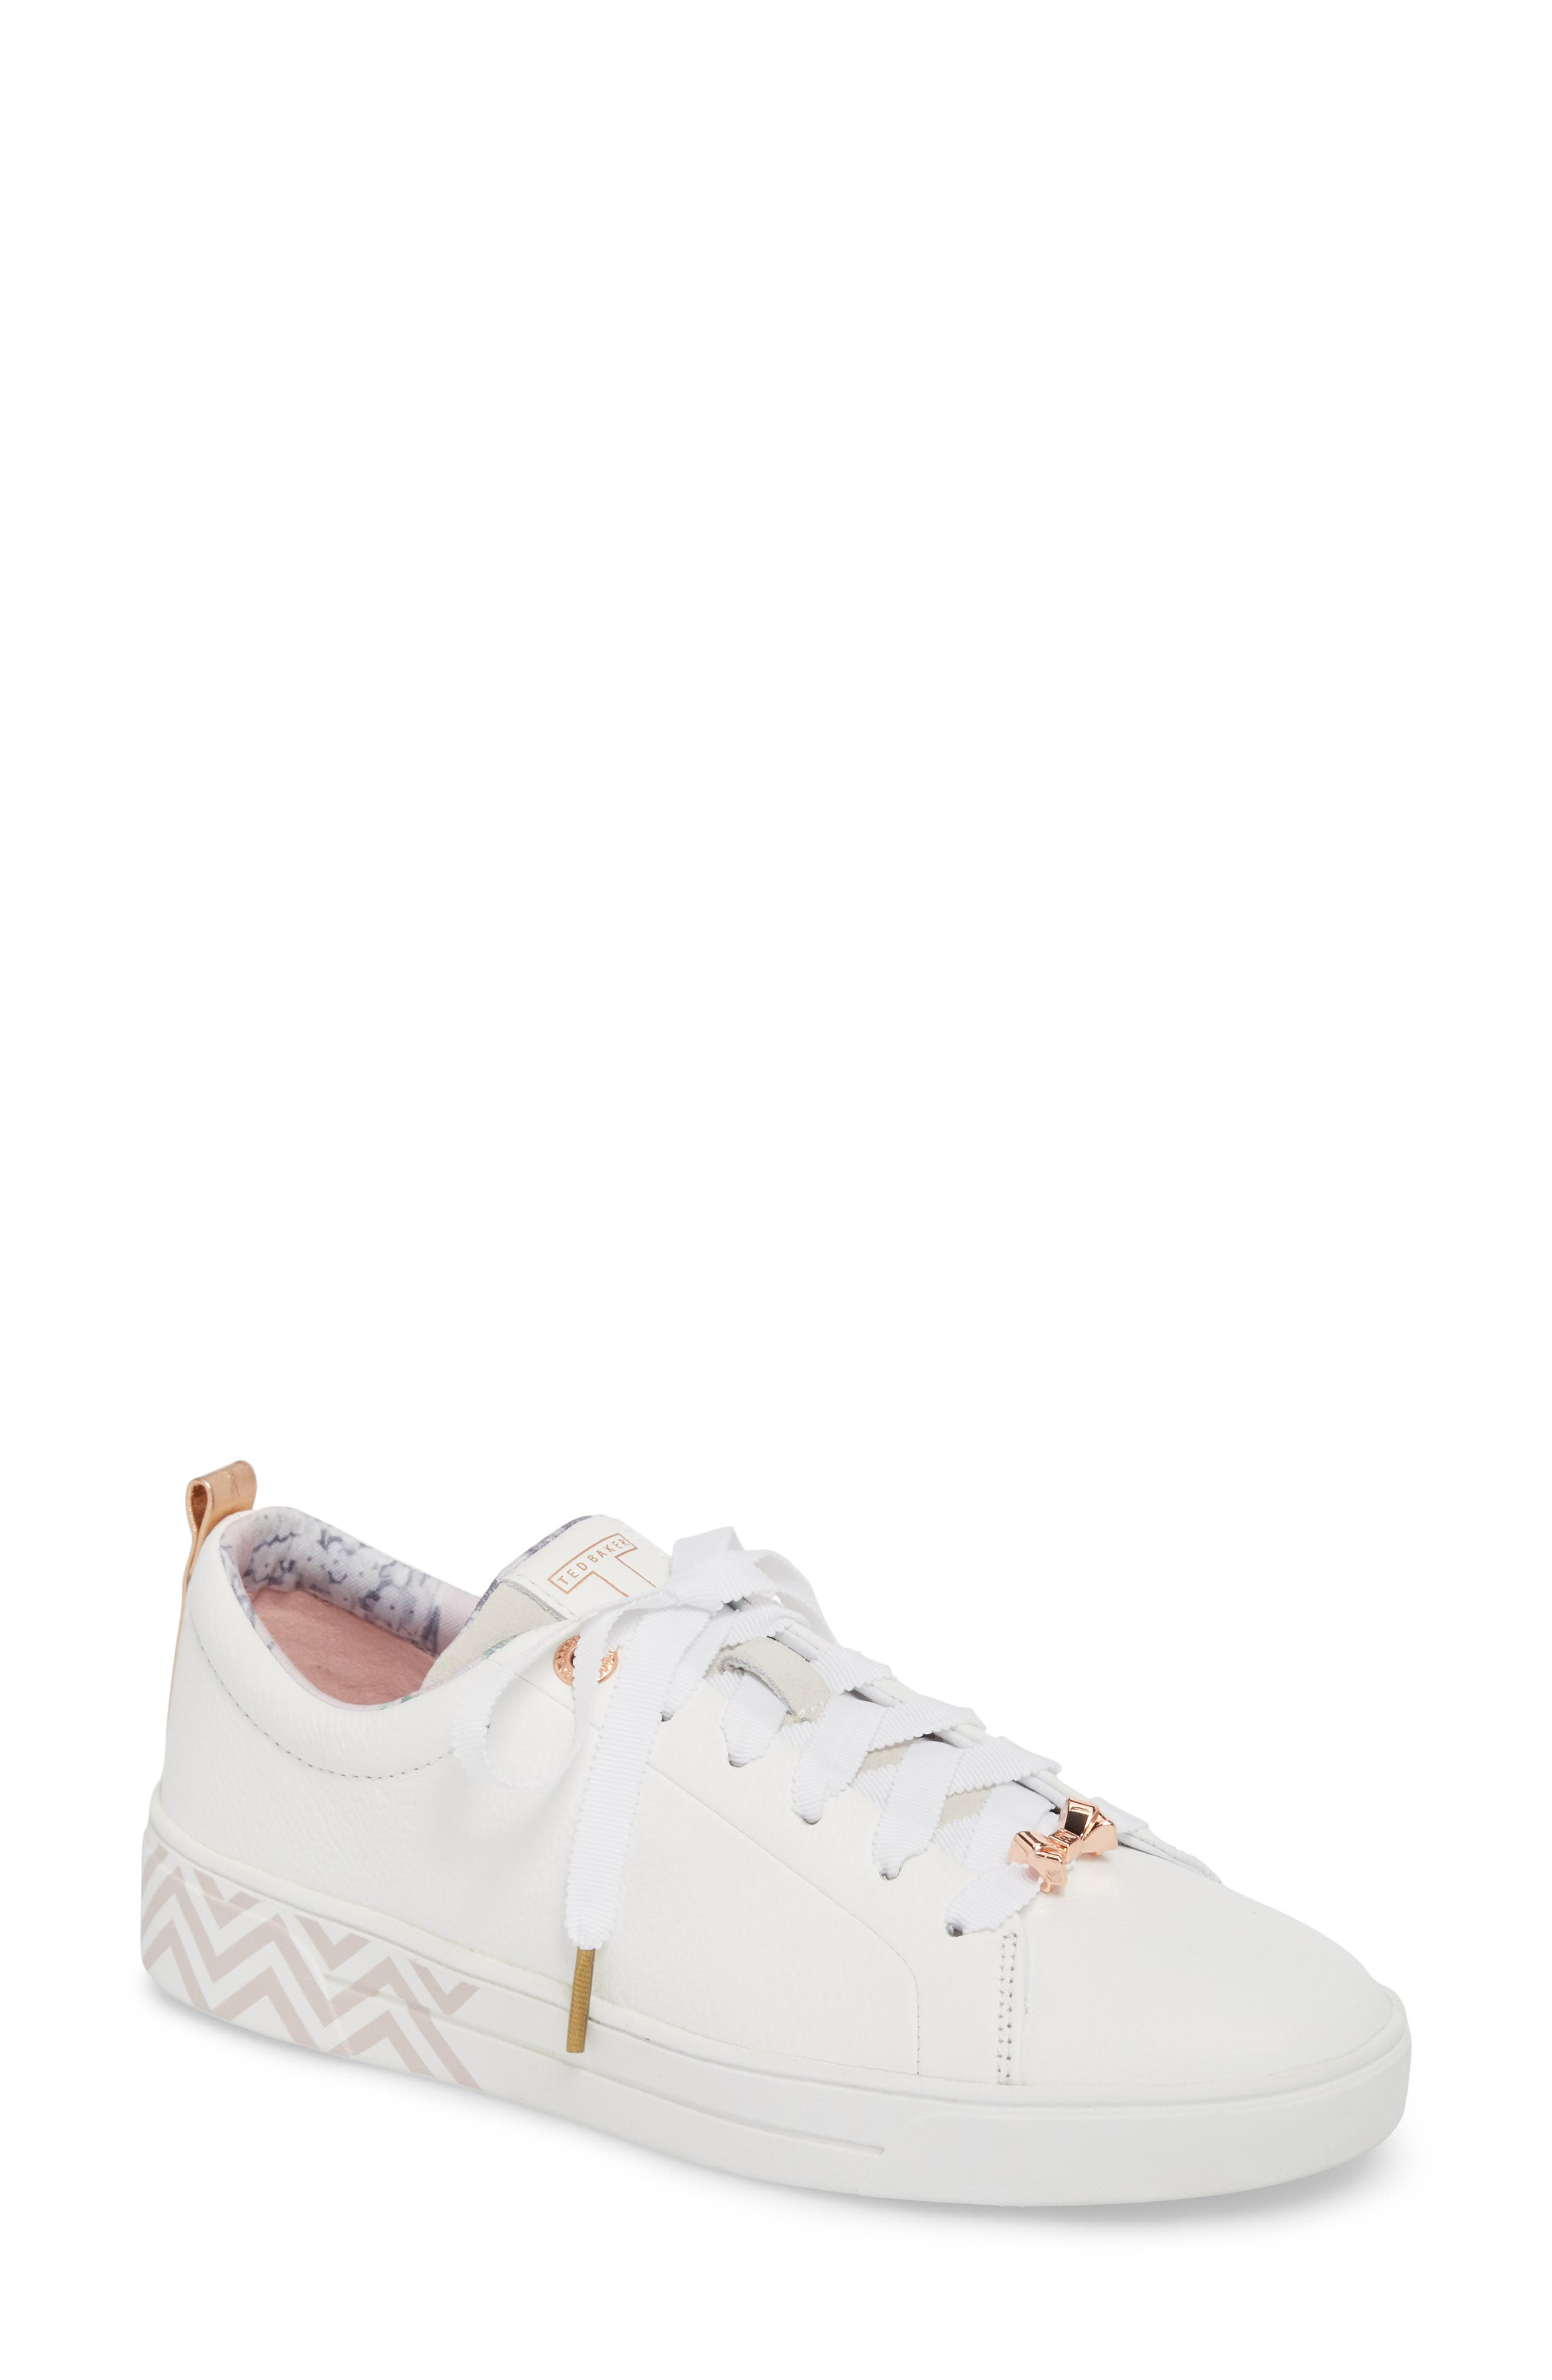 Kelleip Sneaker,                         Main,                         color, PALACE GARDENS PRINT LEATHER